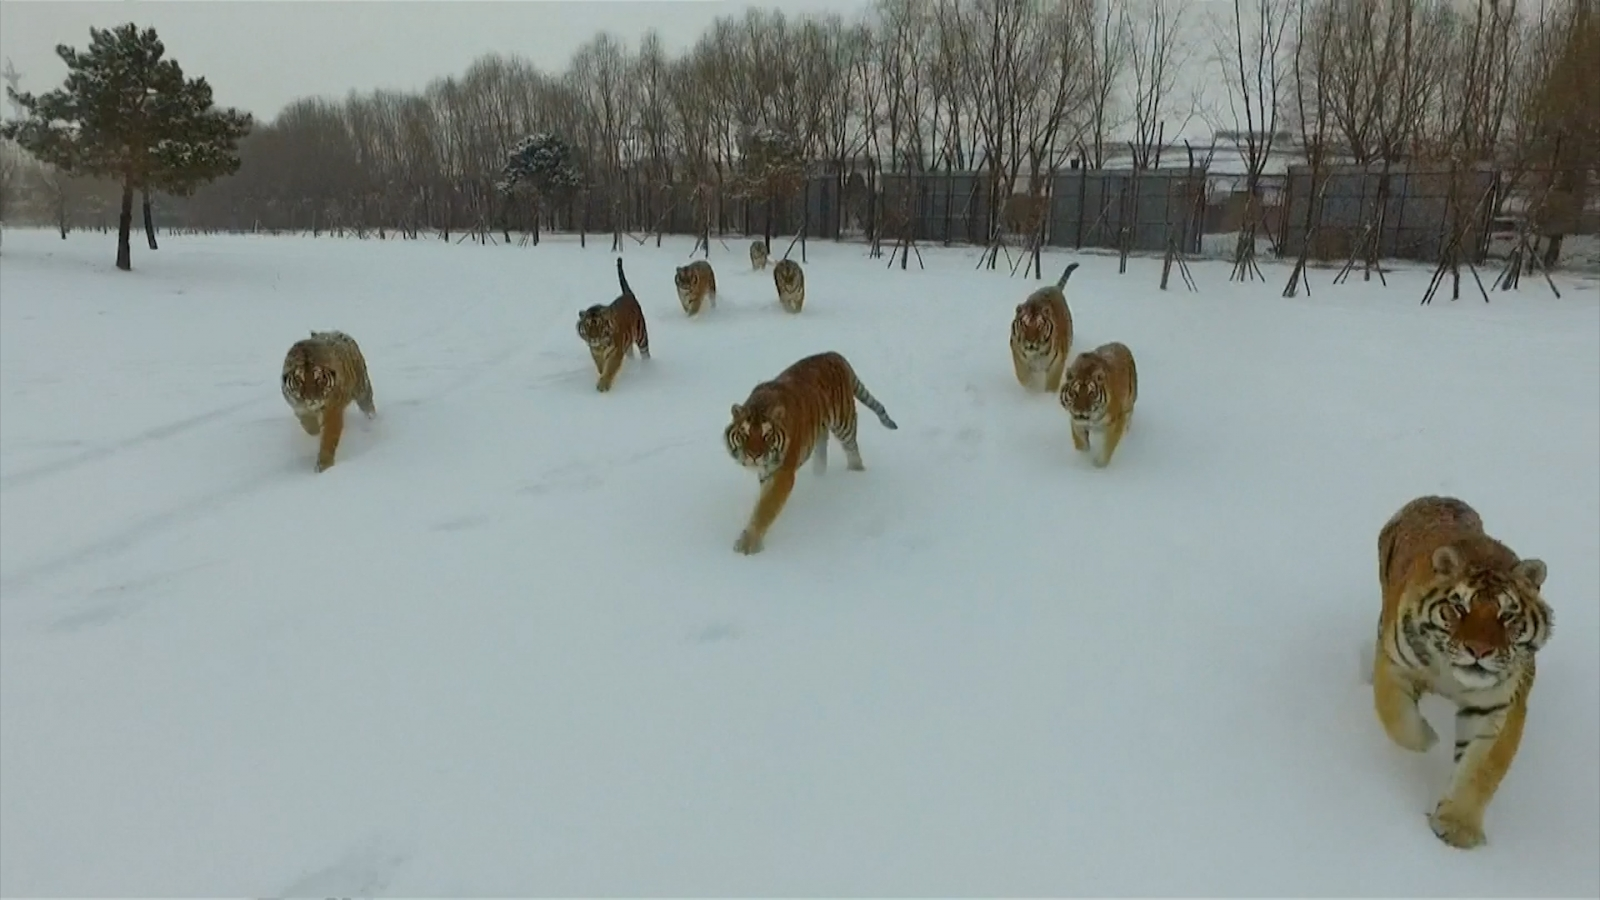 Tubby tigers chase drone for exercise